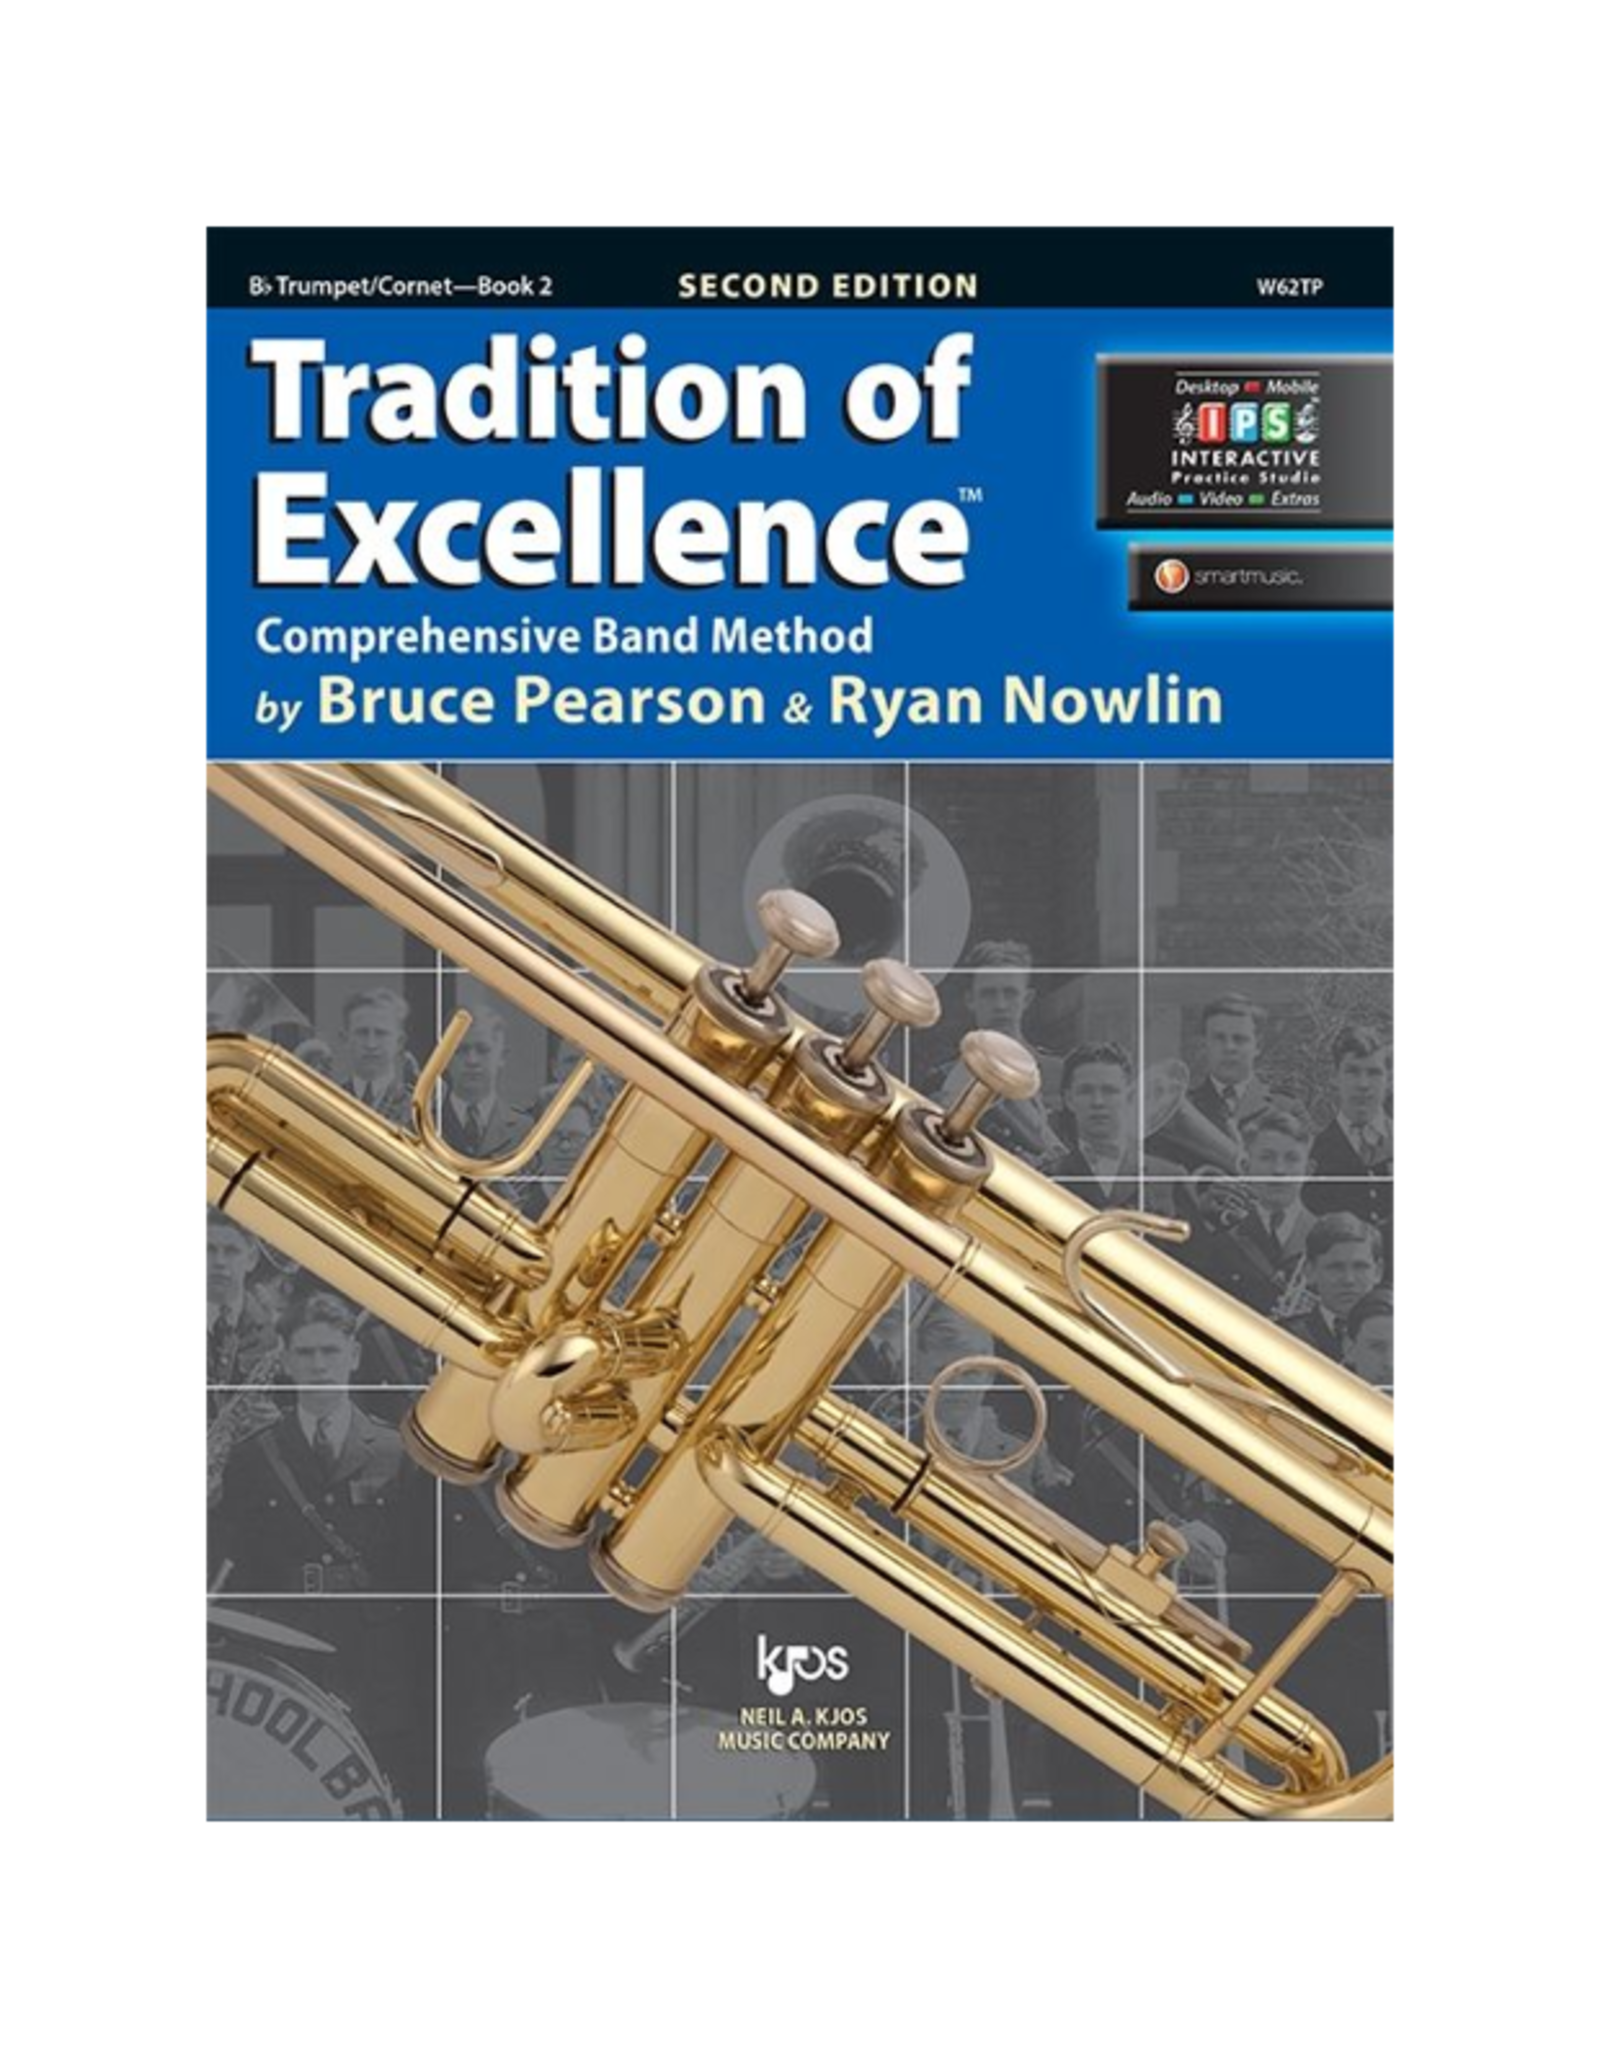 Neil A Kjos Music Company Tradition of Excellence Trumpet Book 2